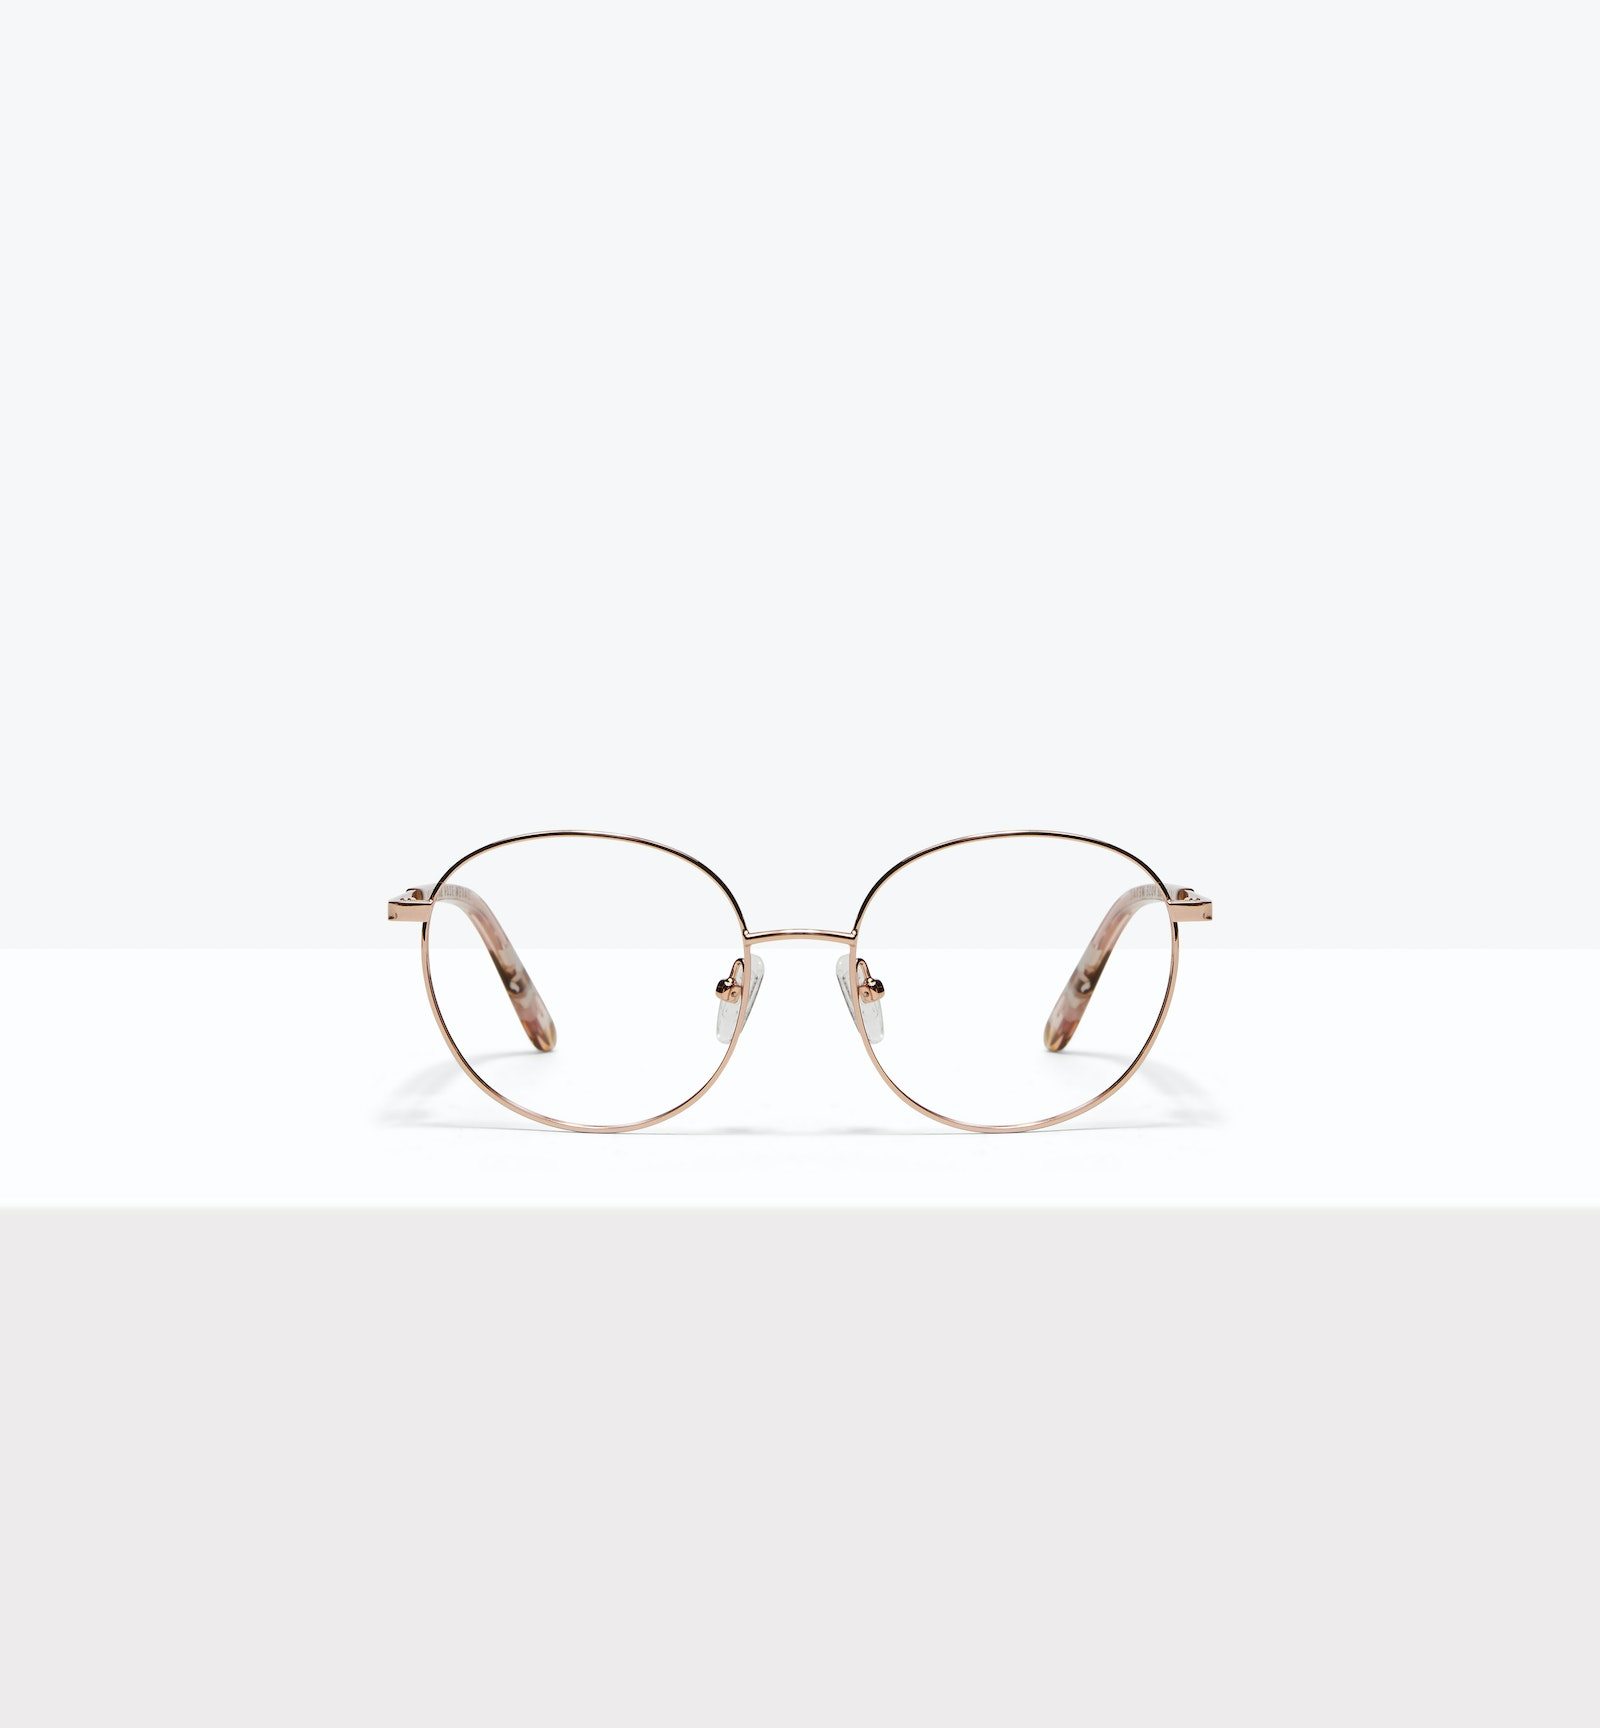 bc45415b1eb Affordable Fashion Glasses Round Eyeglasses Women Joy Petite Rose Metal